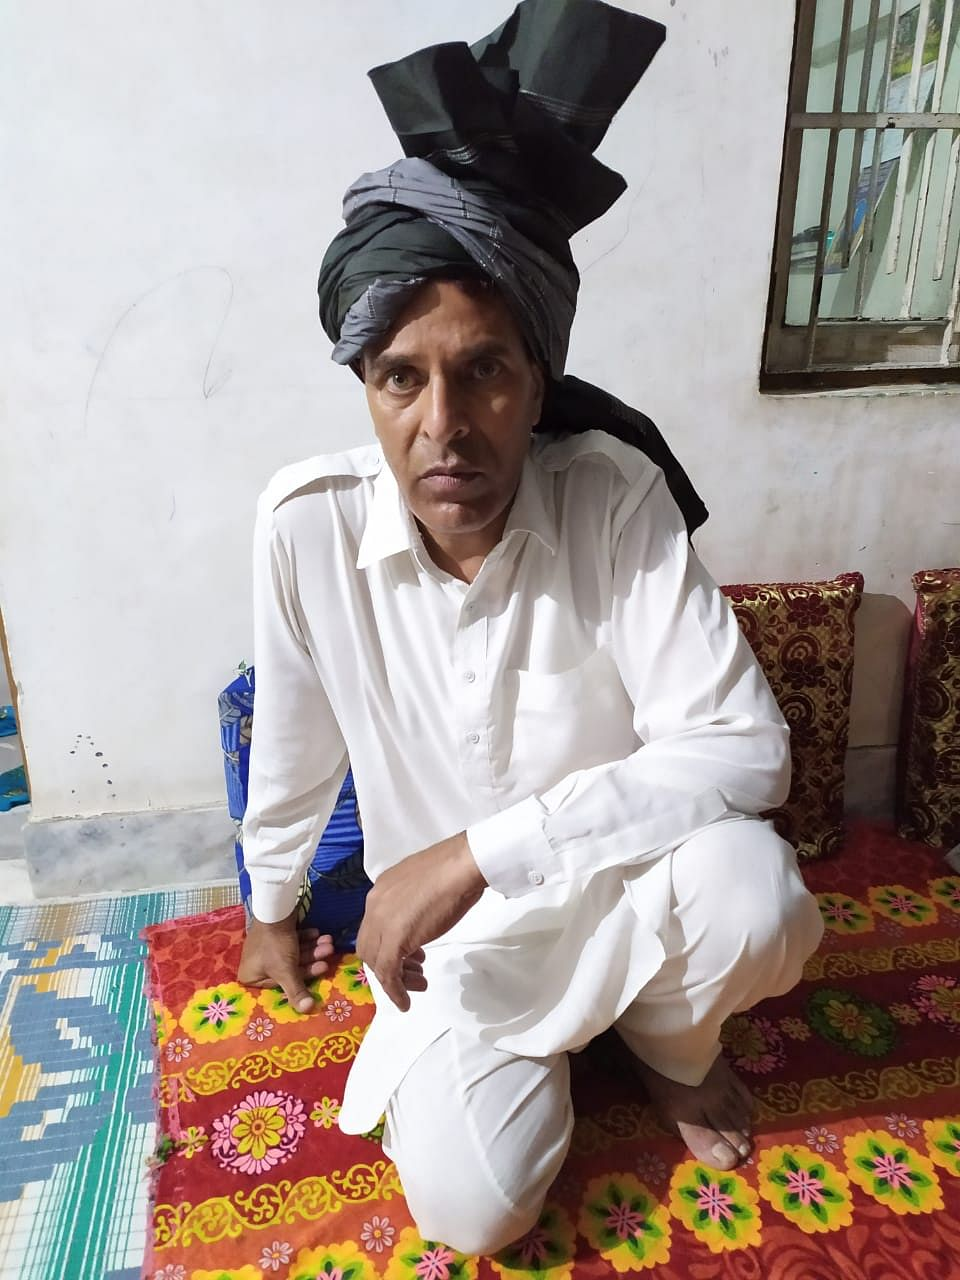 Nazakat Khatana, president of the Gujjar Bakarwal Desh Tehreek-E-Insaaf, has been visitng these Gujjar Bakarwals. He says not only are they running out of ration but the administration has made the procedure of migrating a lot more complicated for the tribals.